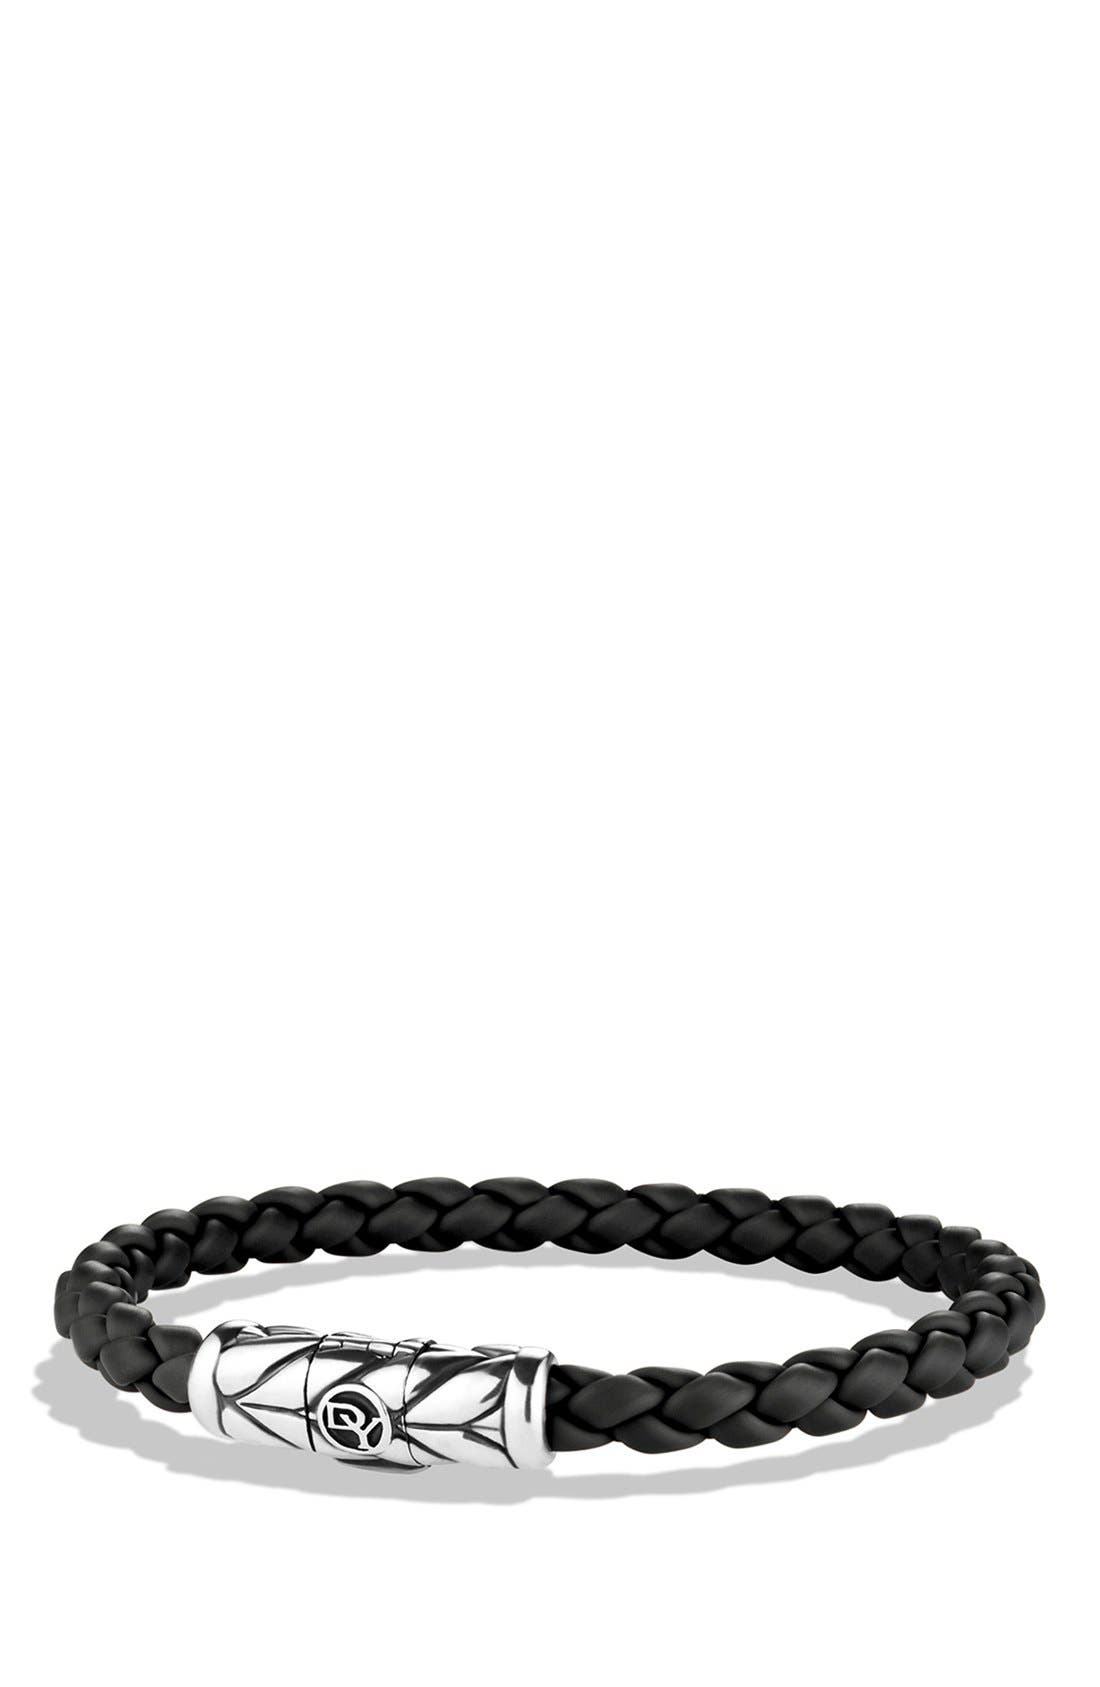 Main Image - David Yurman 'Chevron' Woven Rubber Bracelet